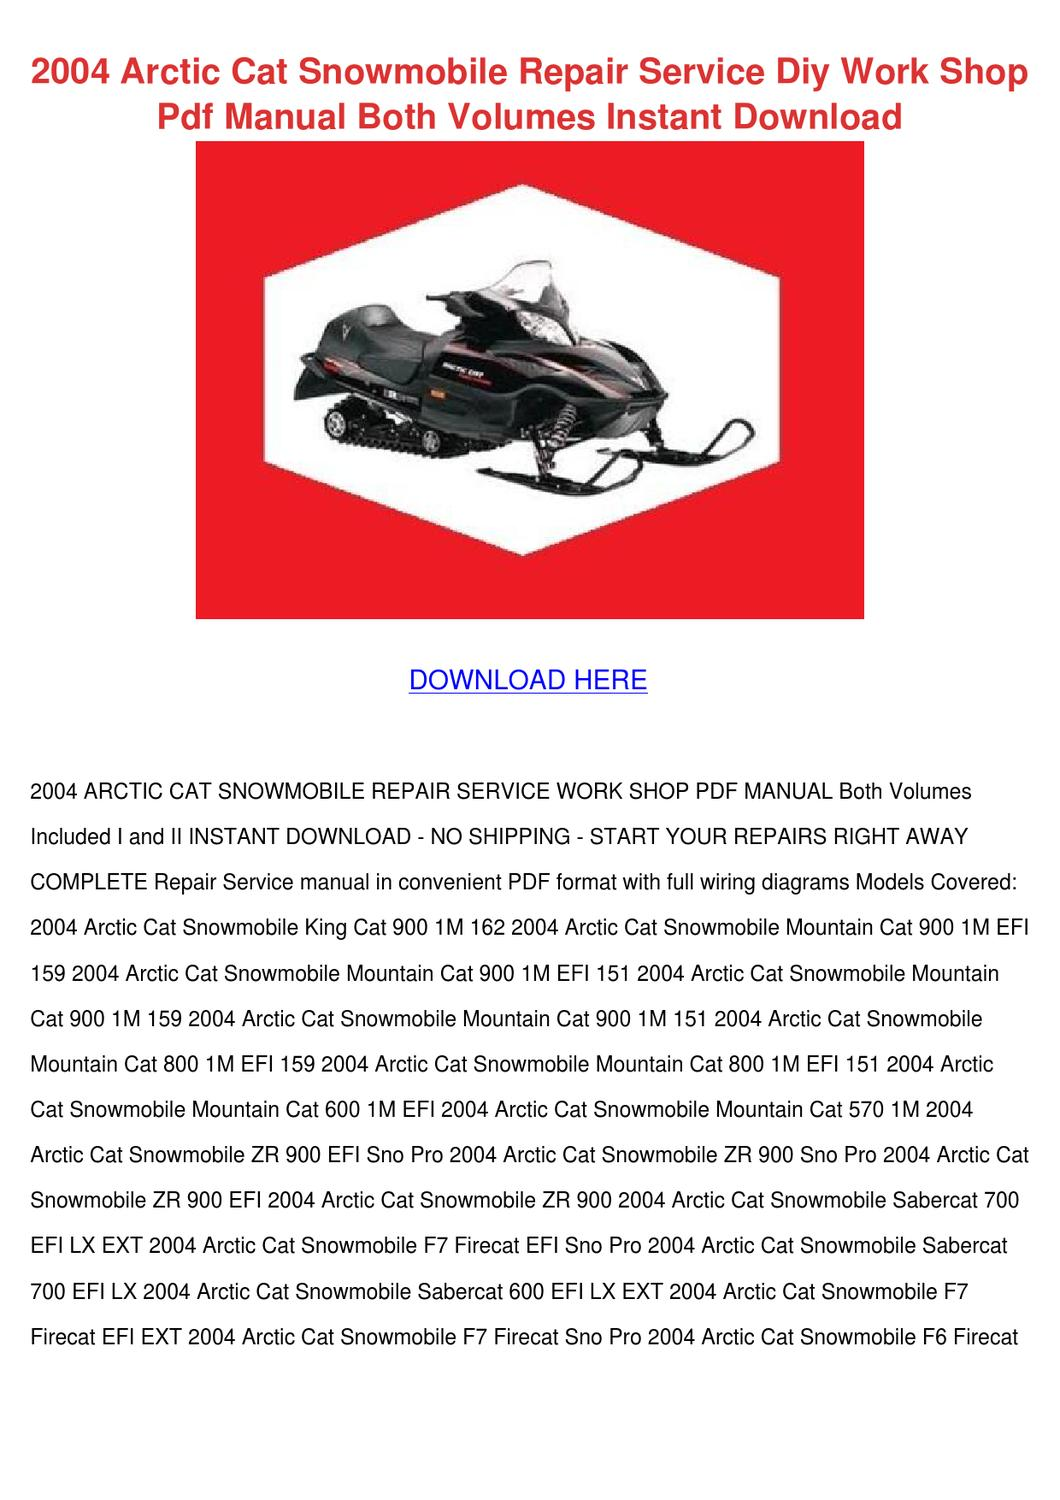 2004 Arctic Cat Snowmobile Repair Service Diy By Gitaflannery Issuu 600 Efi Wiring Diagram